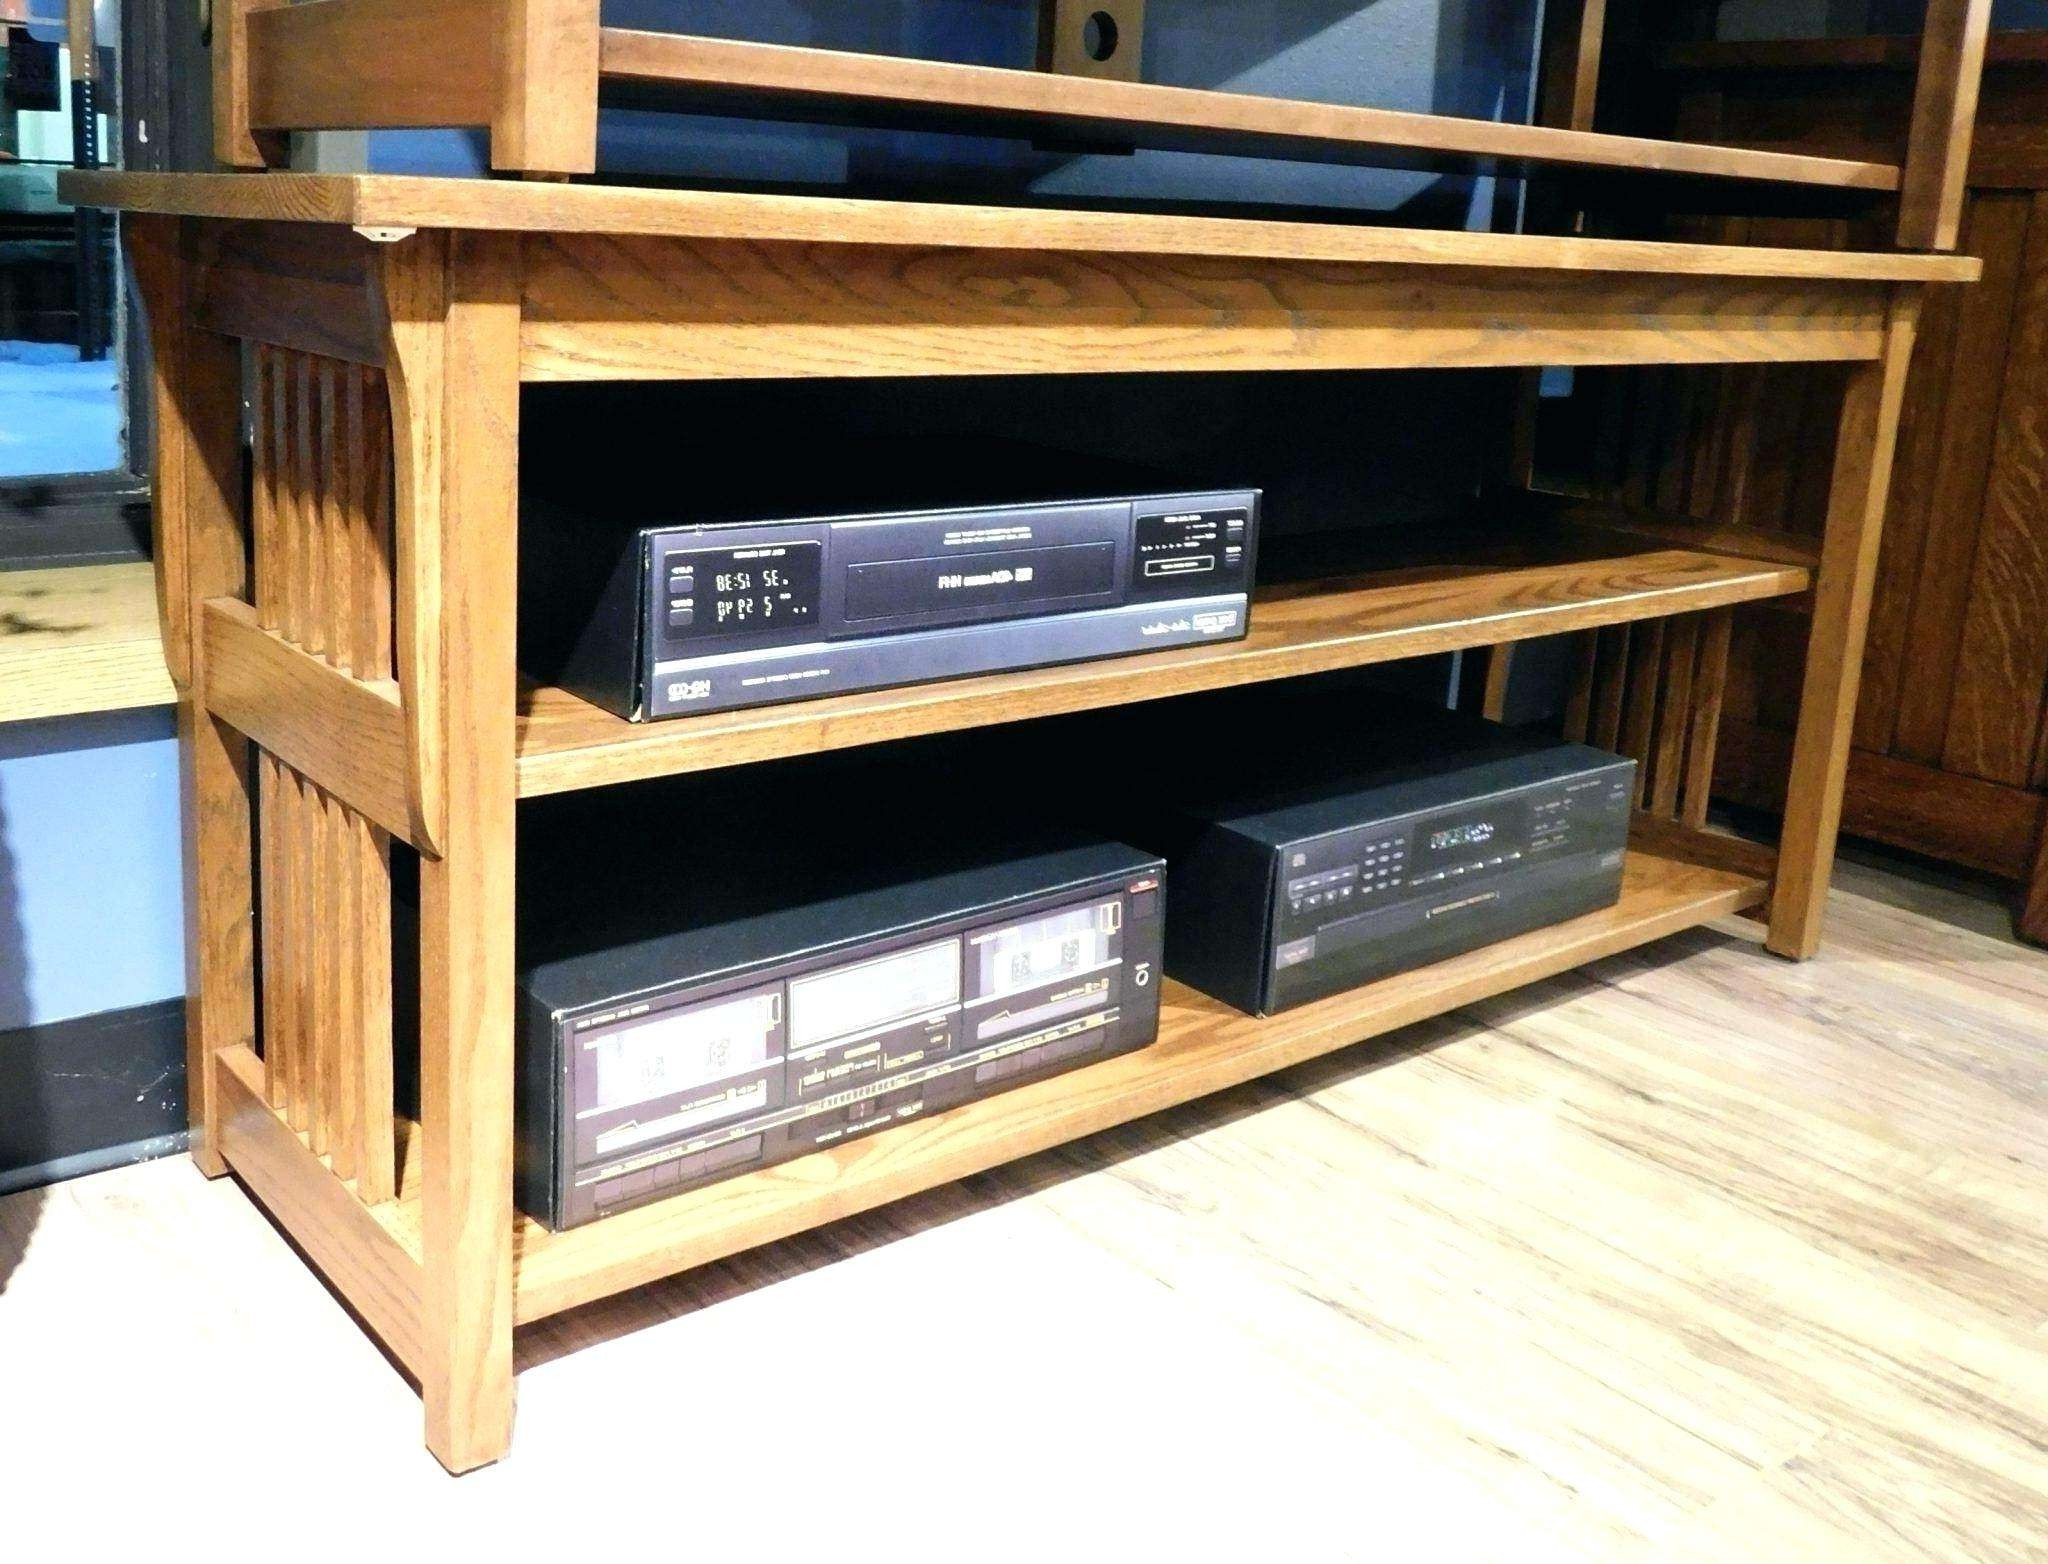 Tv Stand : Maple Tv Stand Simple Cabinet Designs For Living Room With Regard To Maple Tv Stands (View 8 of 15)